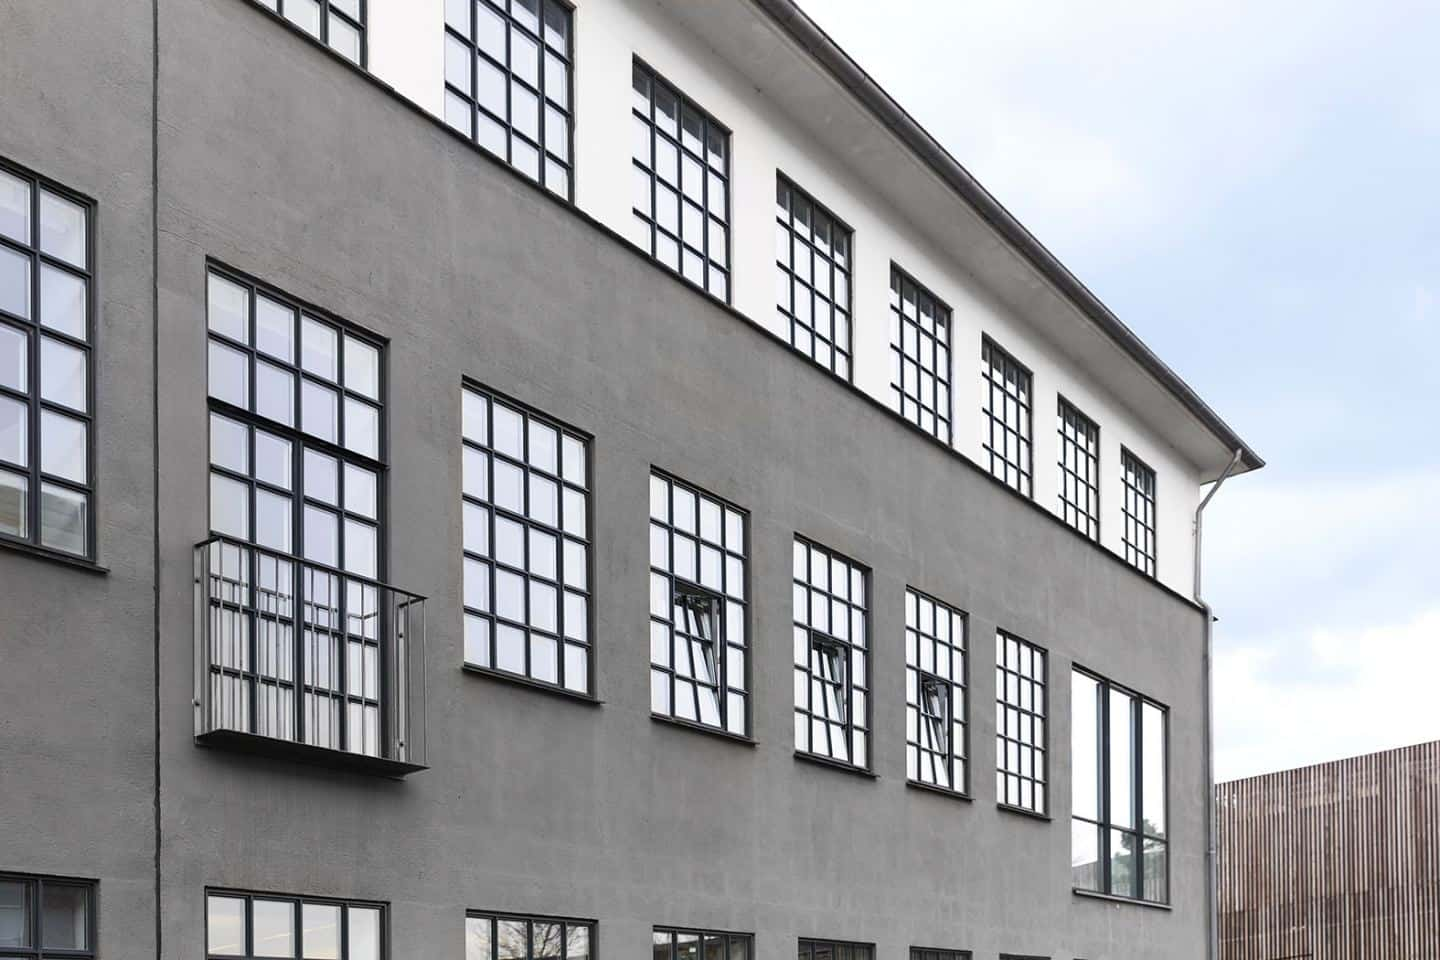 Exterior of the home of Vipp Owner Jette Egelund which is an apartment in a converted factory